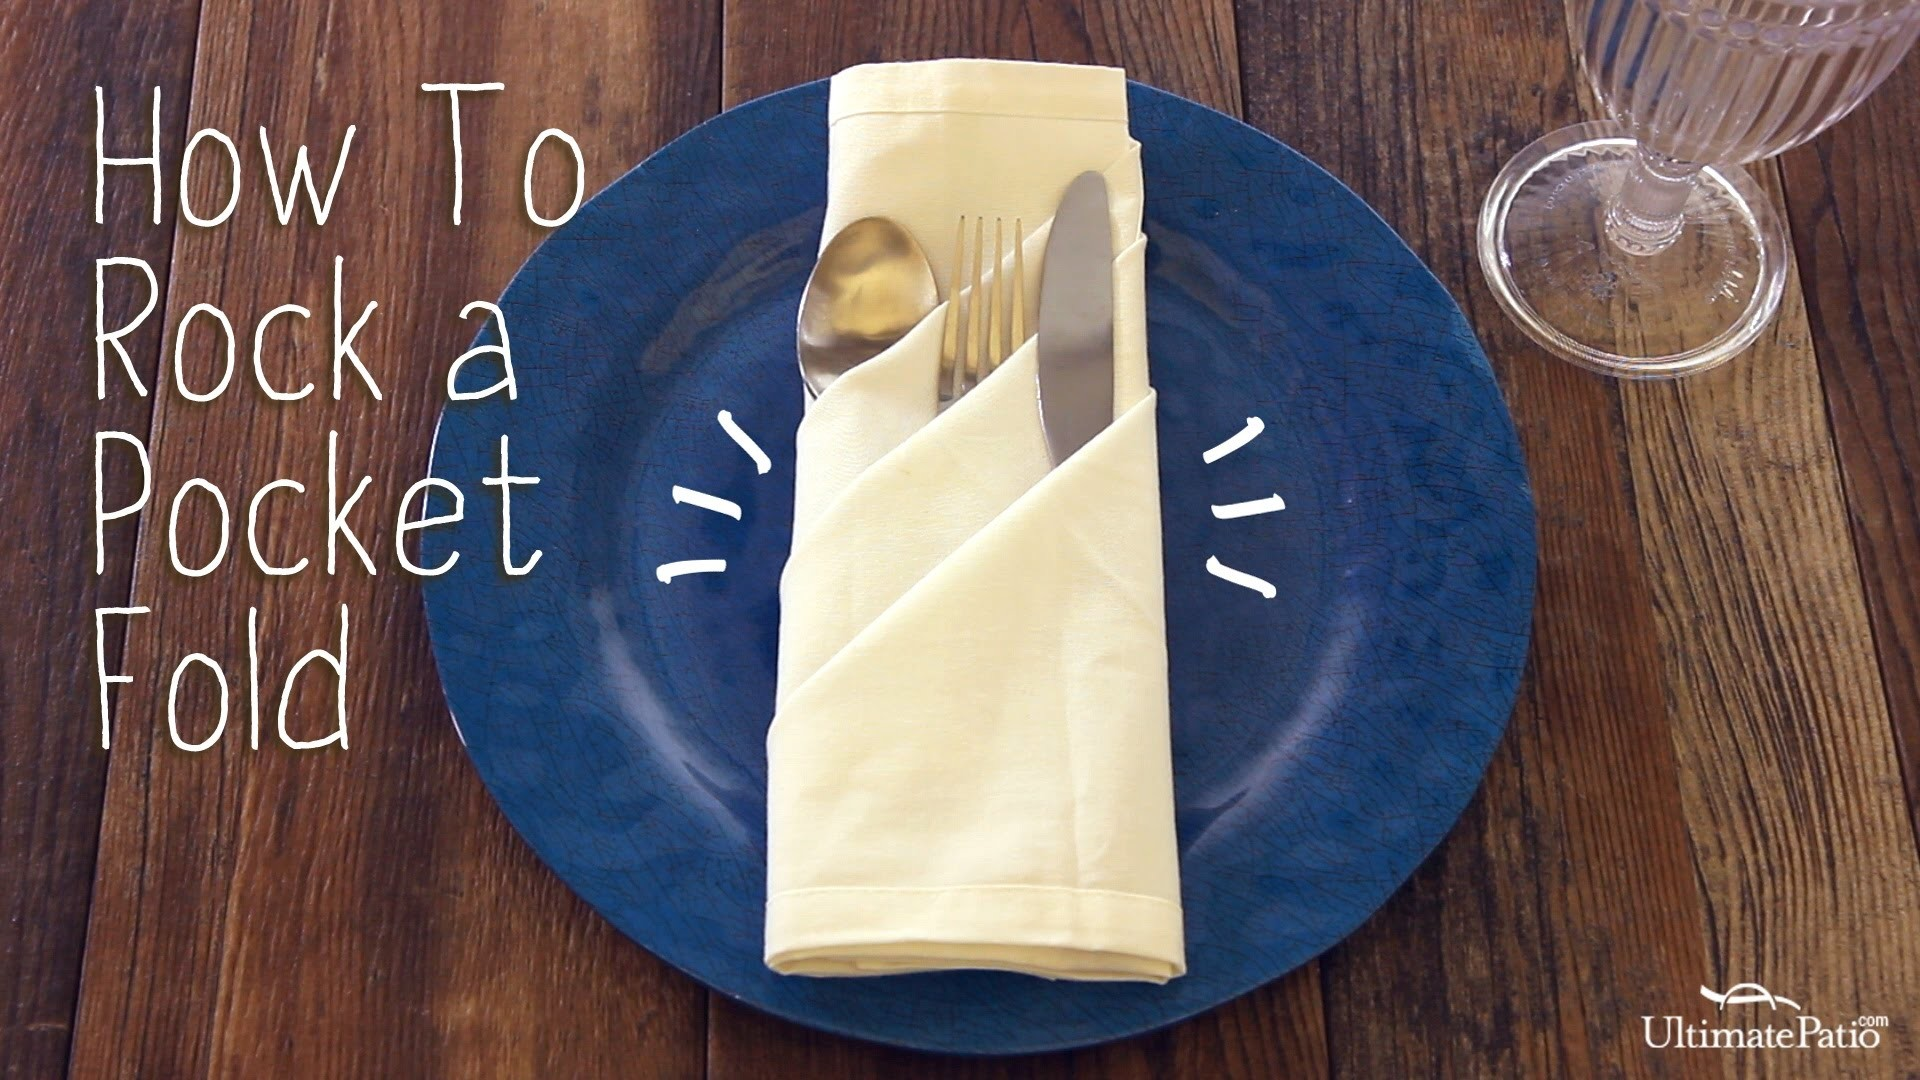 Napkin Folding   How To Pocket Fold   Quick And Easy! | UltimatePatio.com